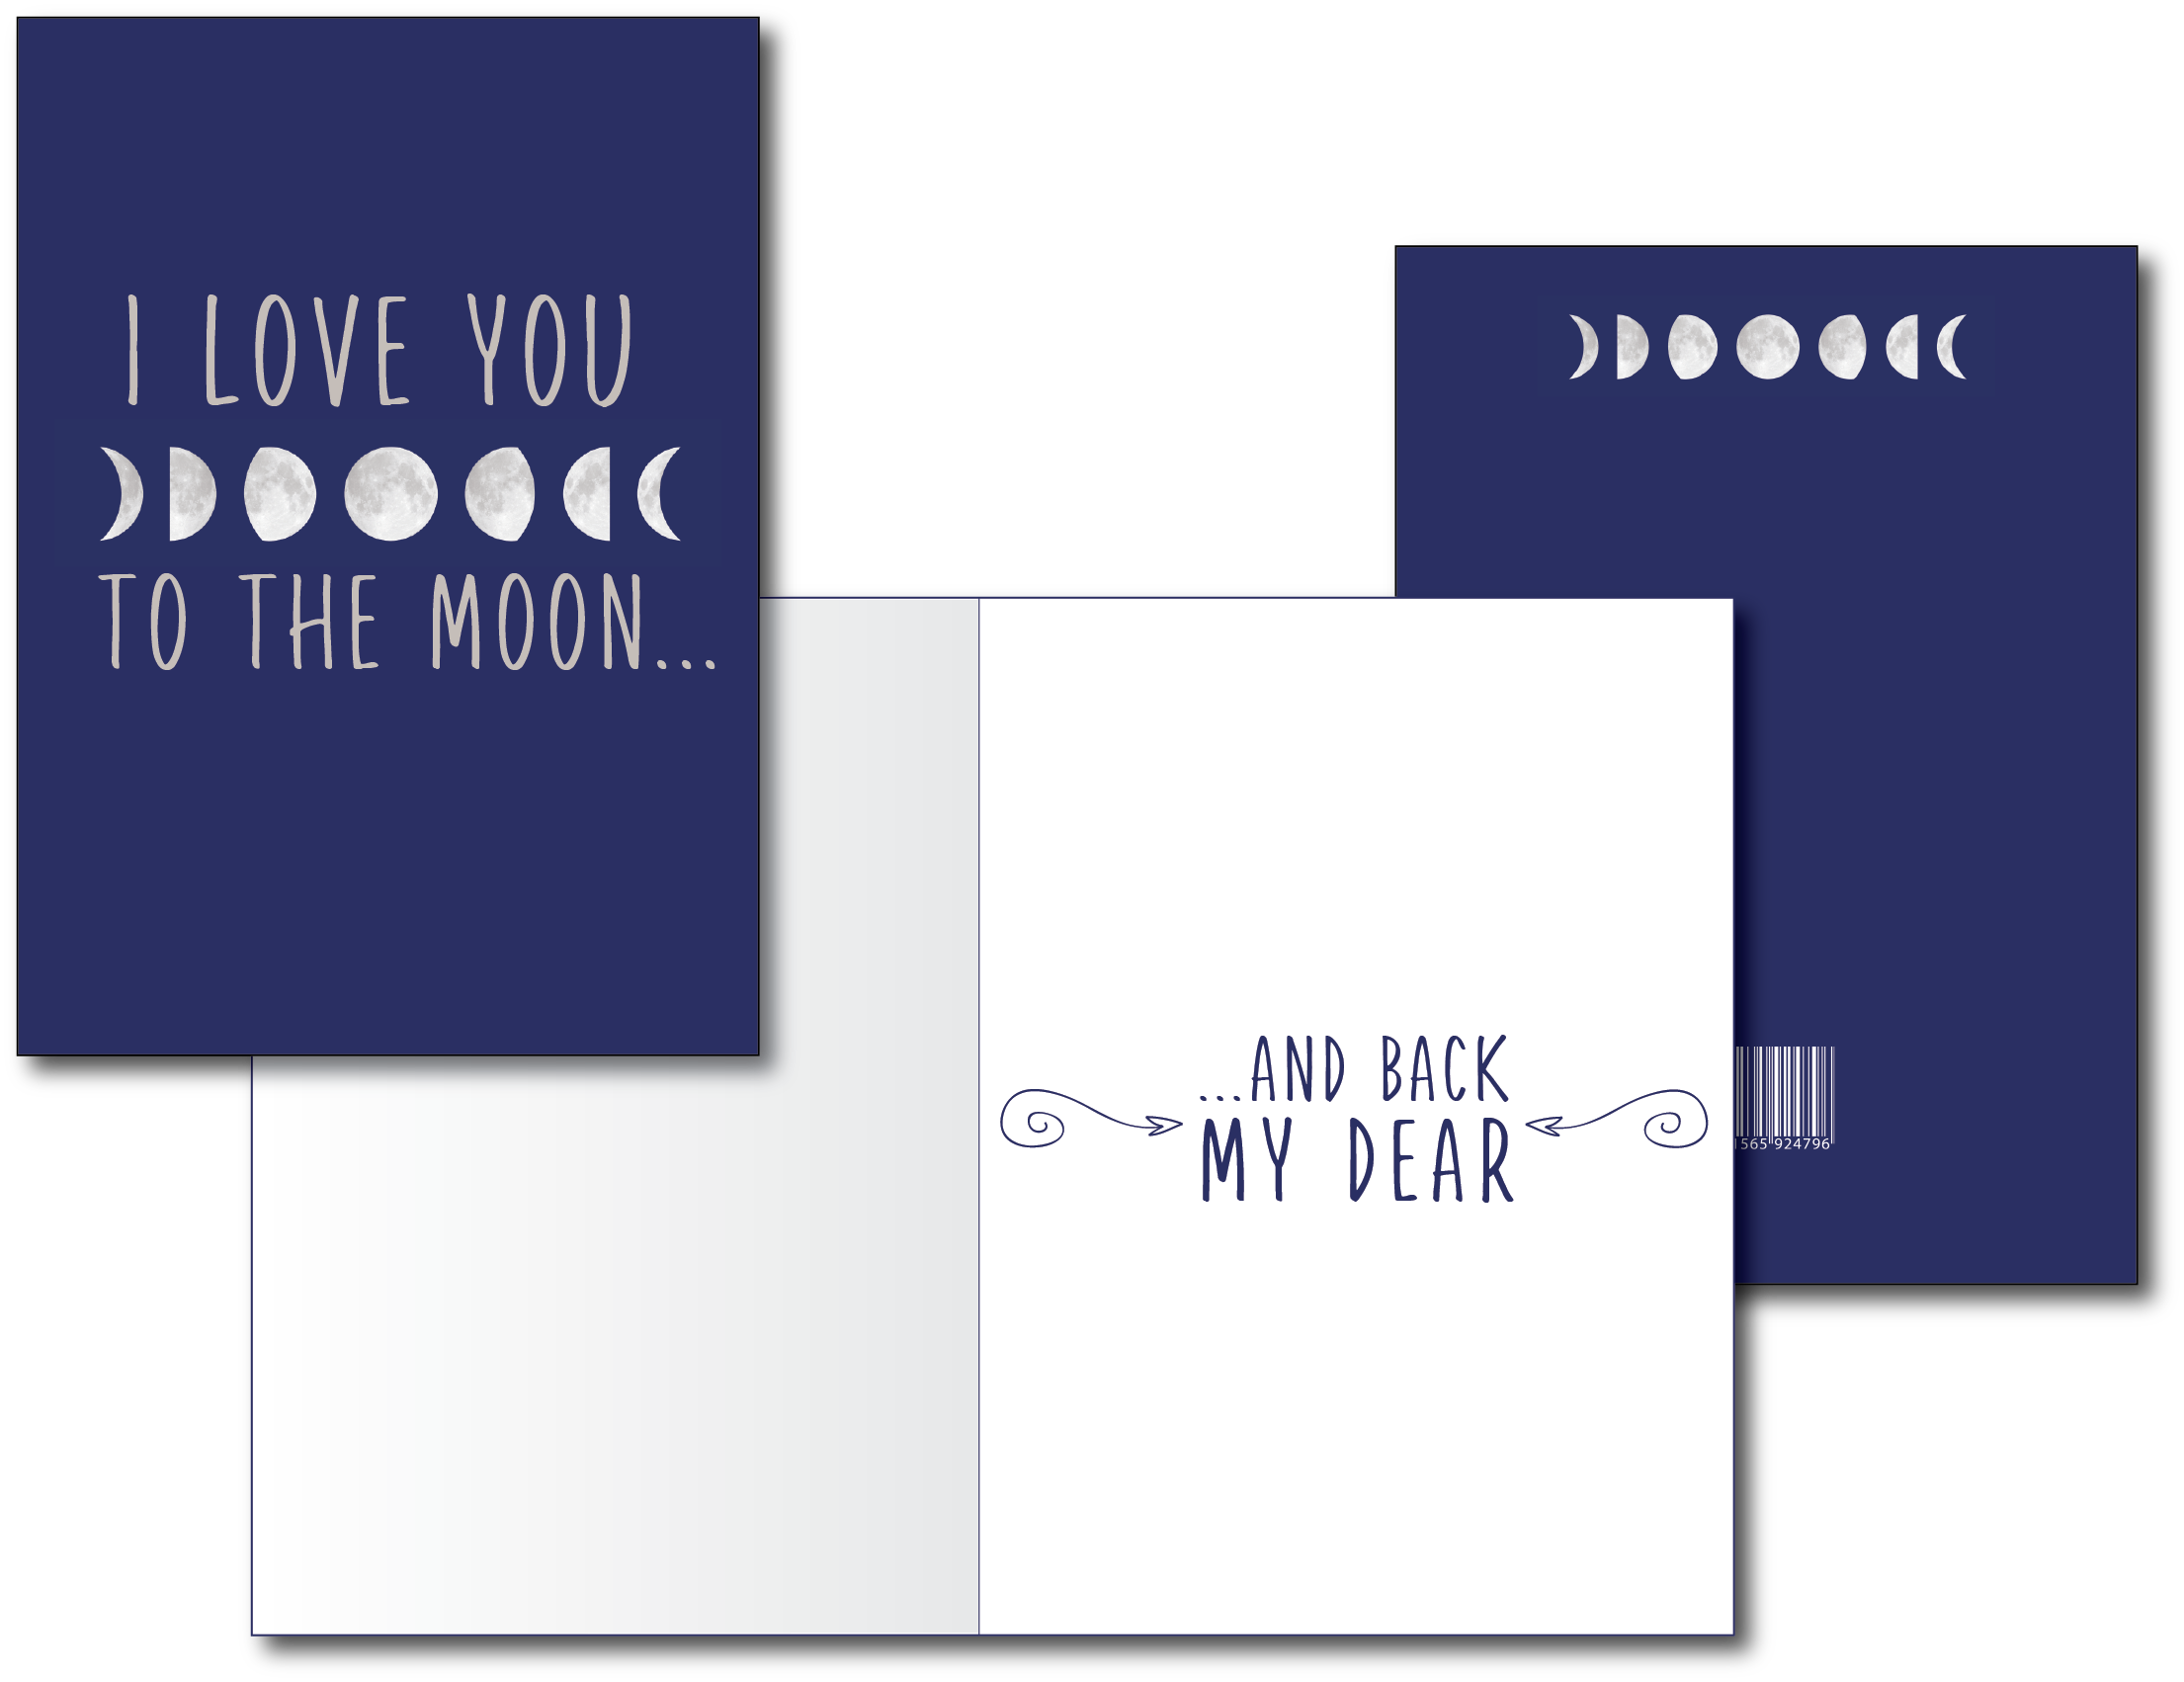 Ily2moon&back spread sheet